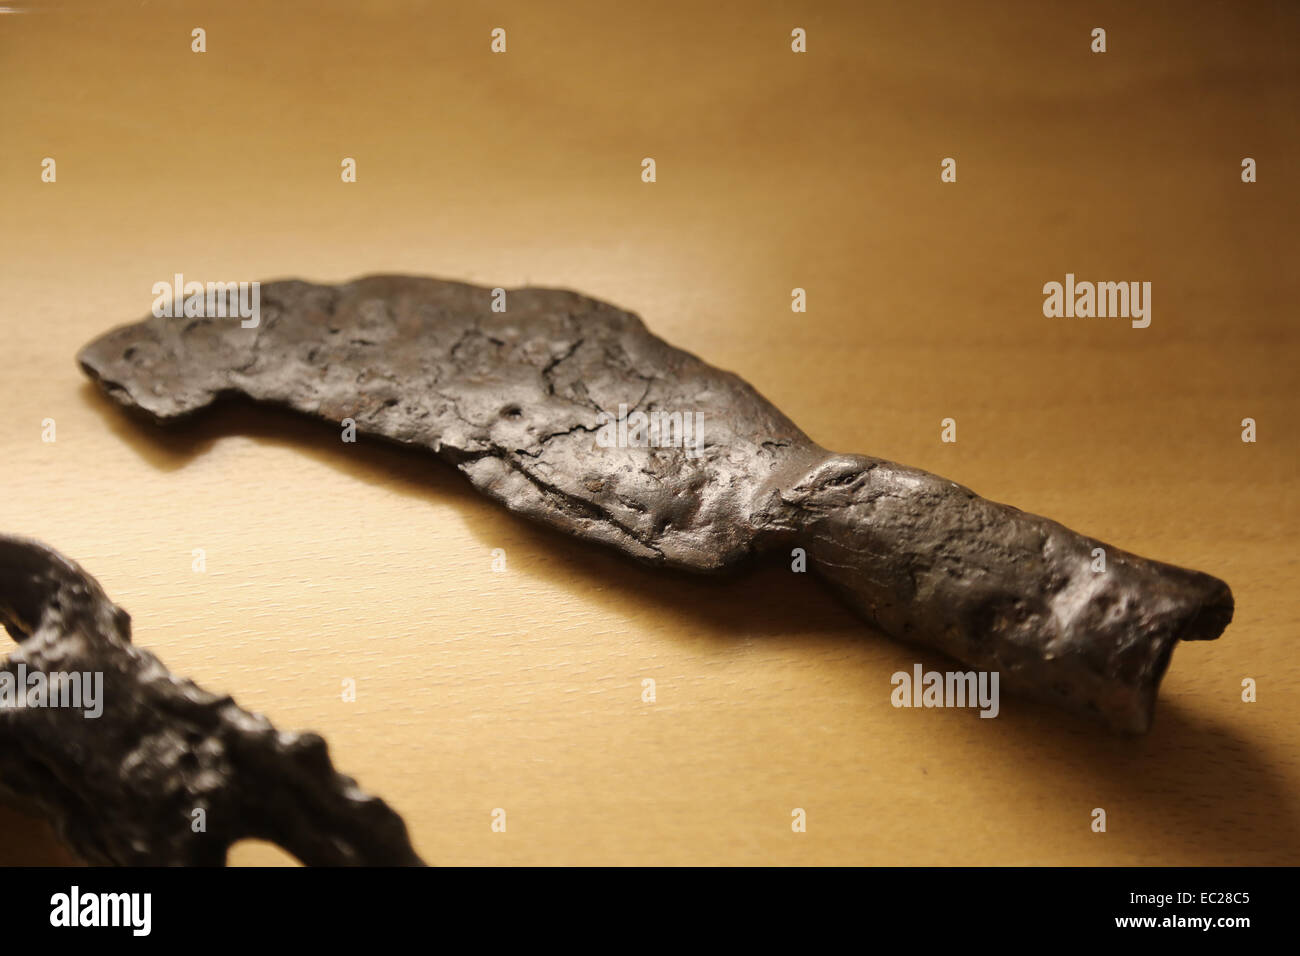 Roman Empire. Facula vieatica. Iron sickle. Used to work in vineyard. 1st c. AD. City History Museum. Barcelona. - Stock Image